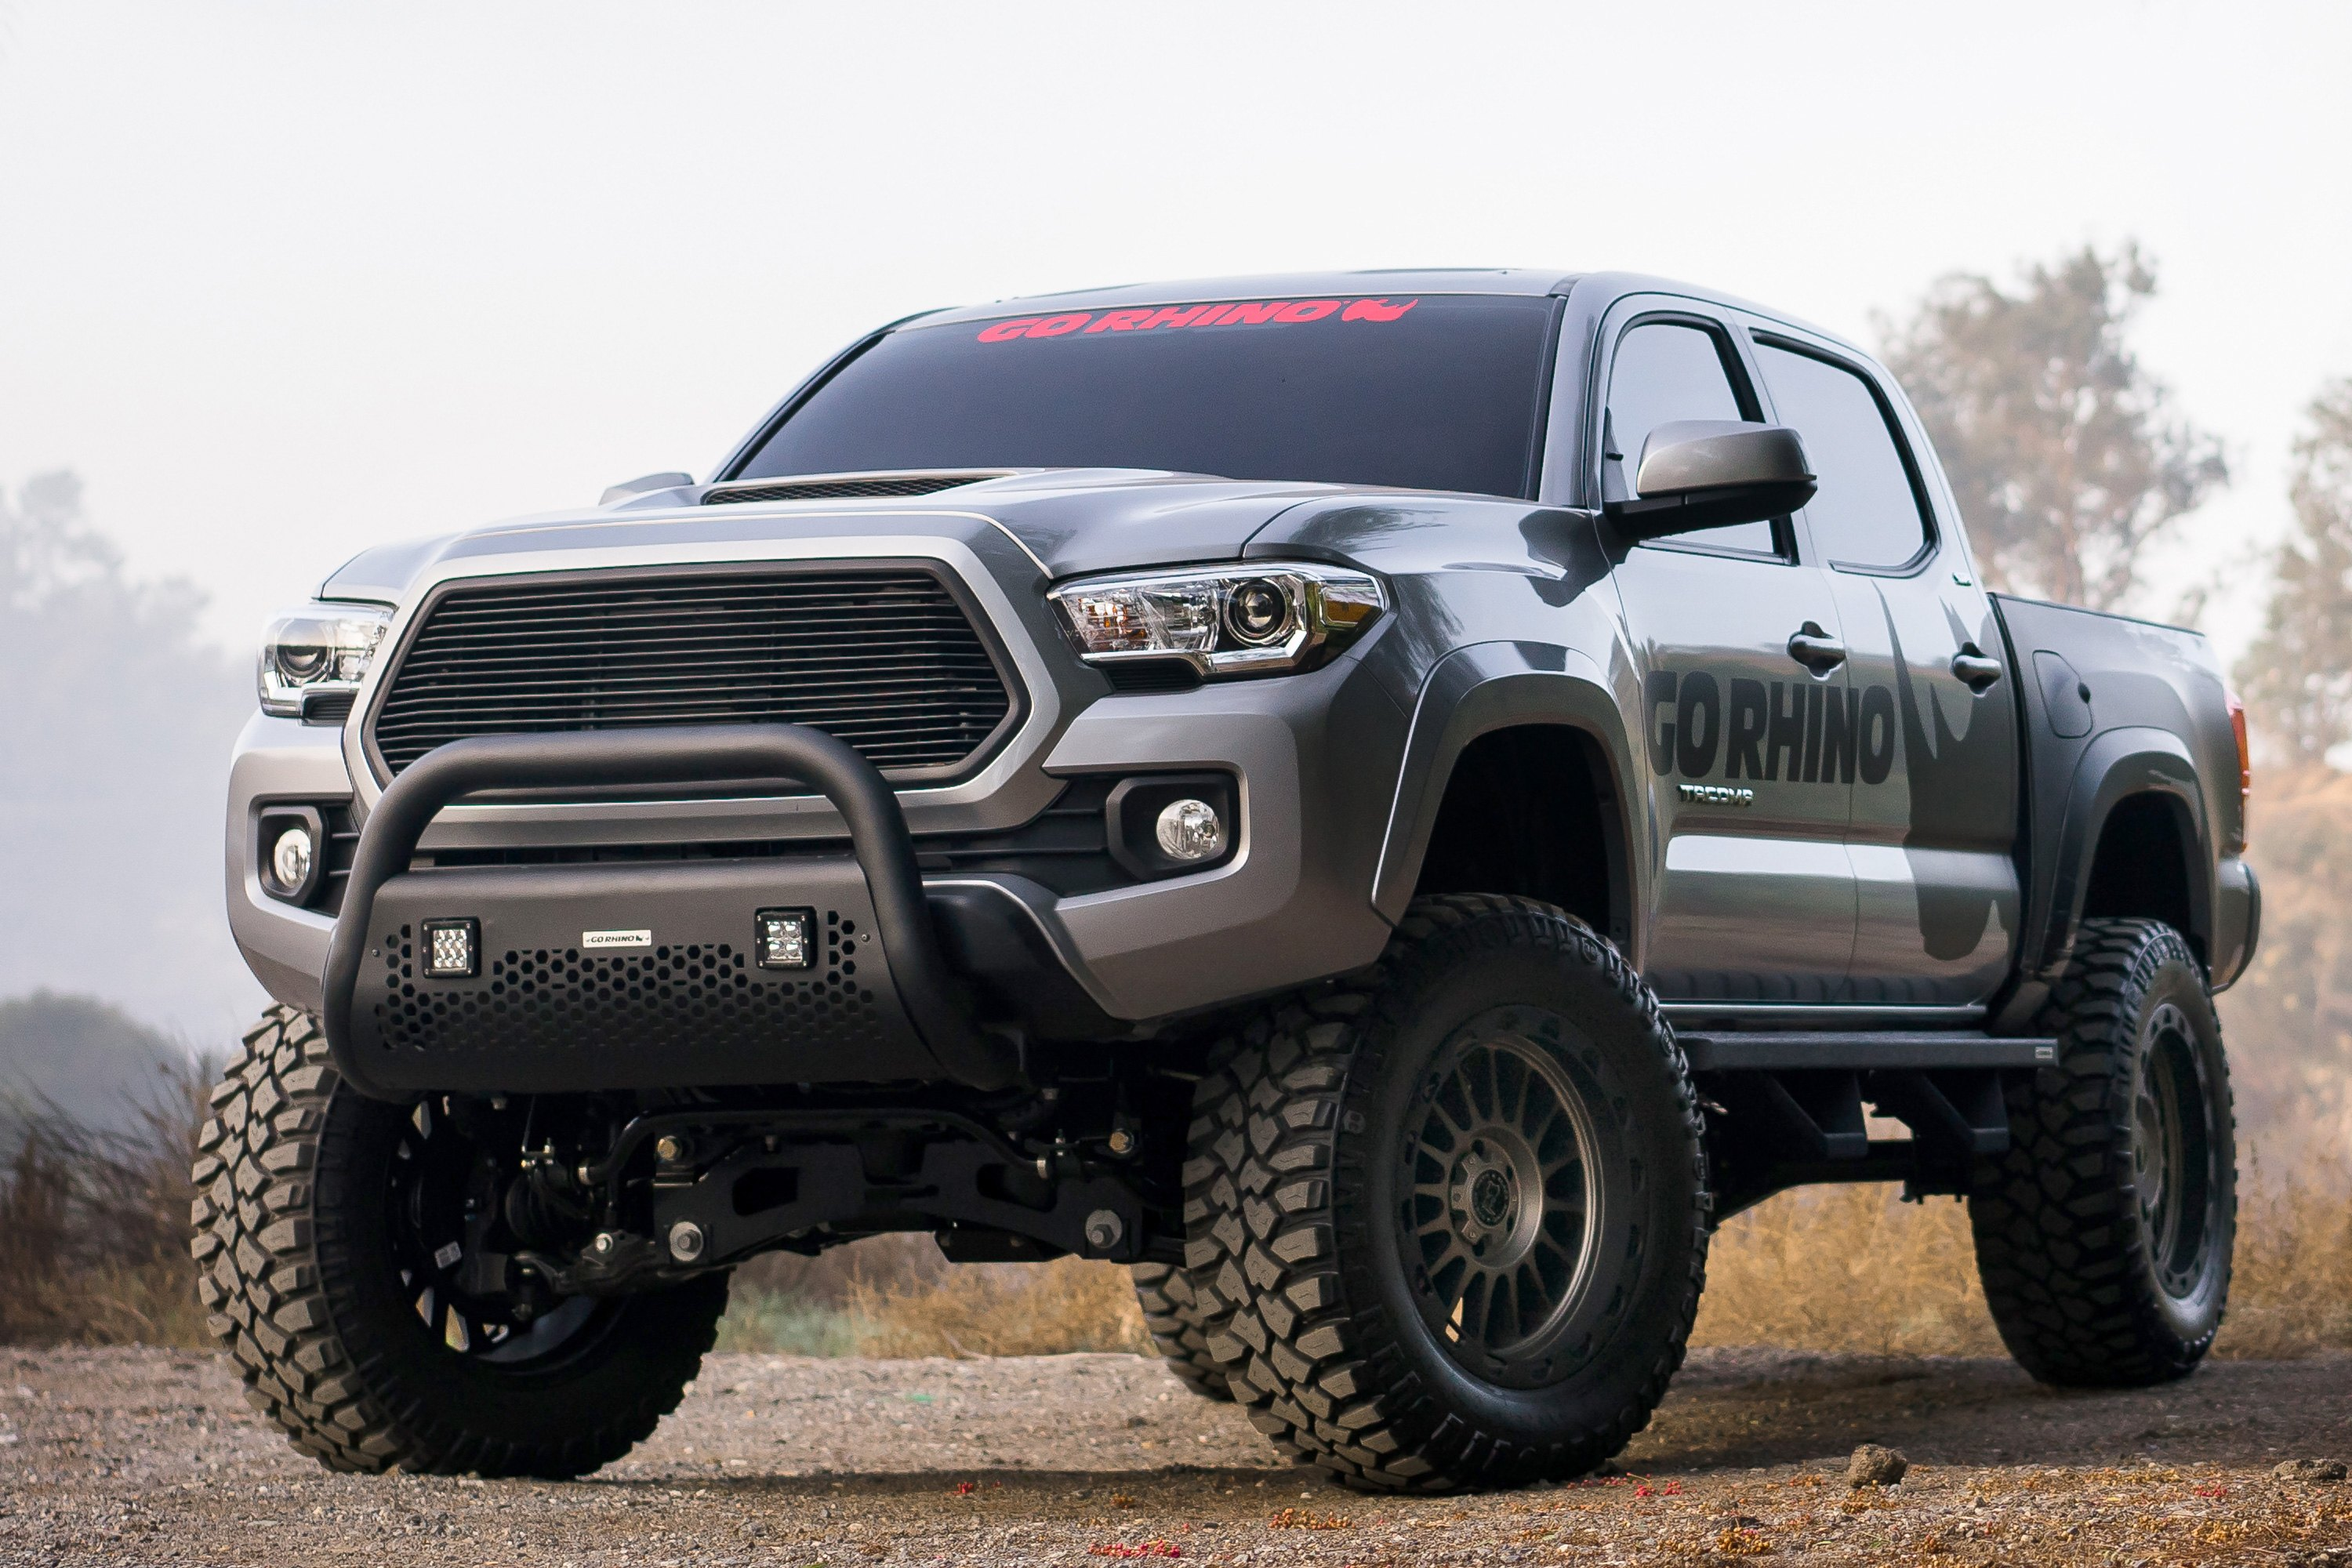 Complete Kit: Front Guard+Brackets, Rhino! Charger 2 55652T RC2 LR Textured Black Front Guard for Dodge Go Rhino